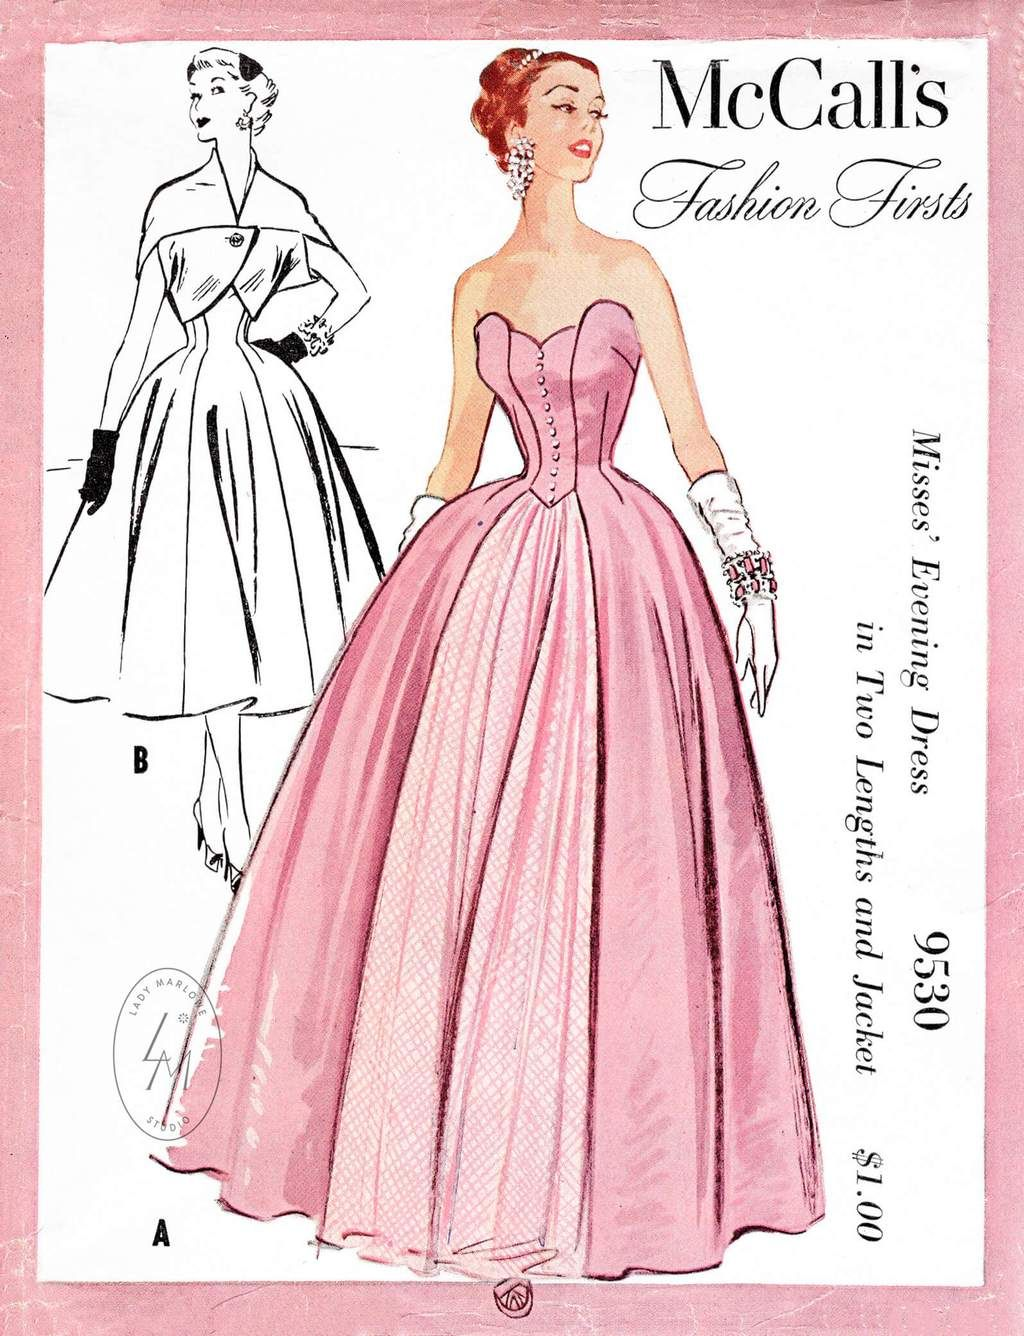 4e7ceb946c 1950s 1953 evening gown or day dress   cocoon jacket vintage sewing pattern  reproduction petal shaped bodice bouffant skirt McCall s 9530